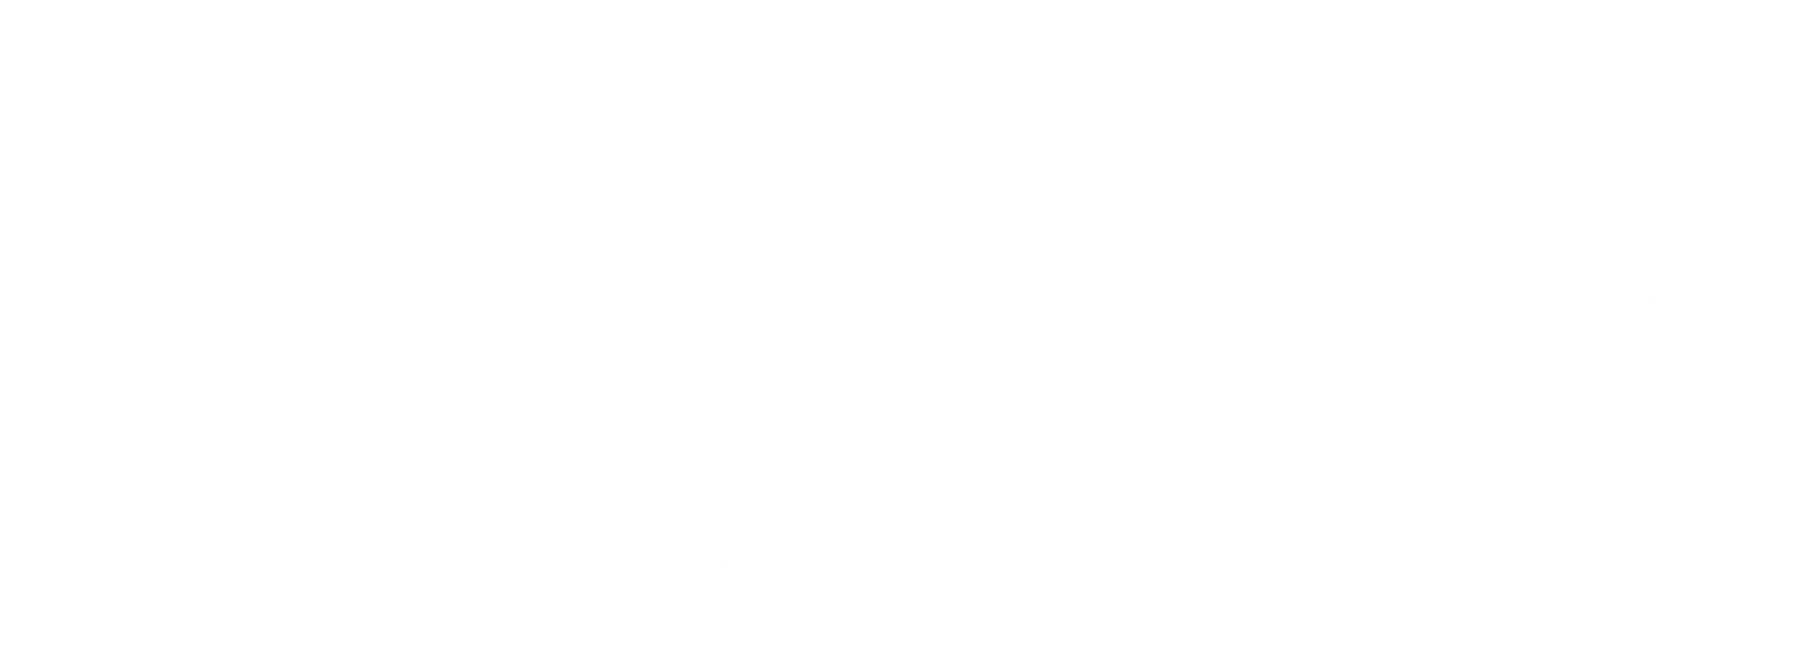 Tiger Woods Project